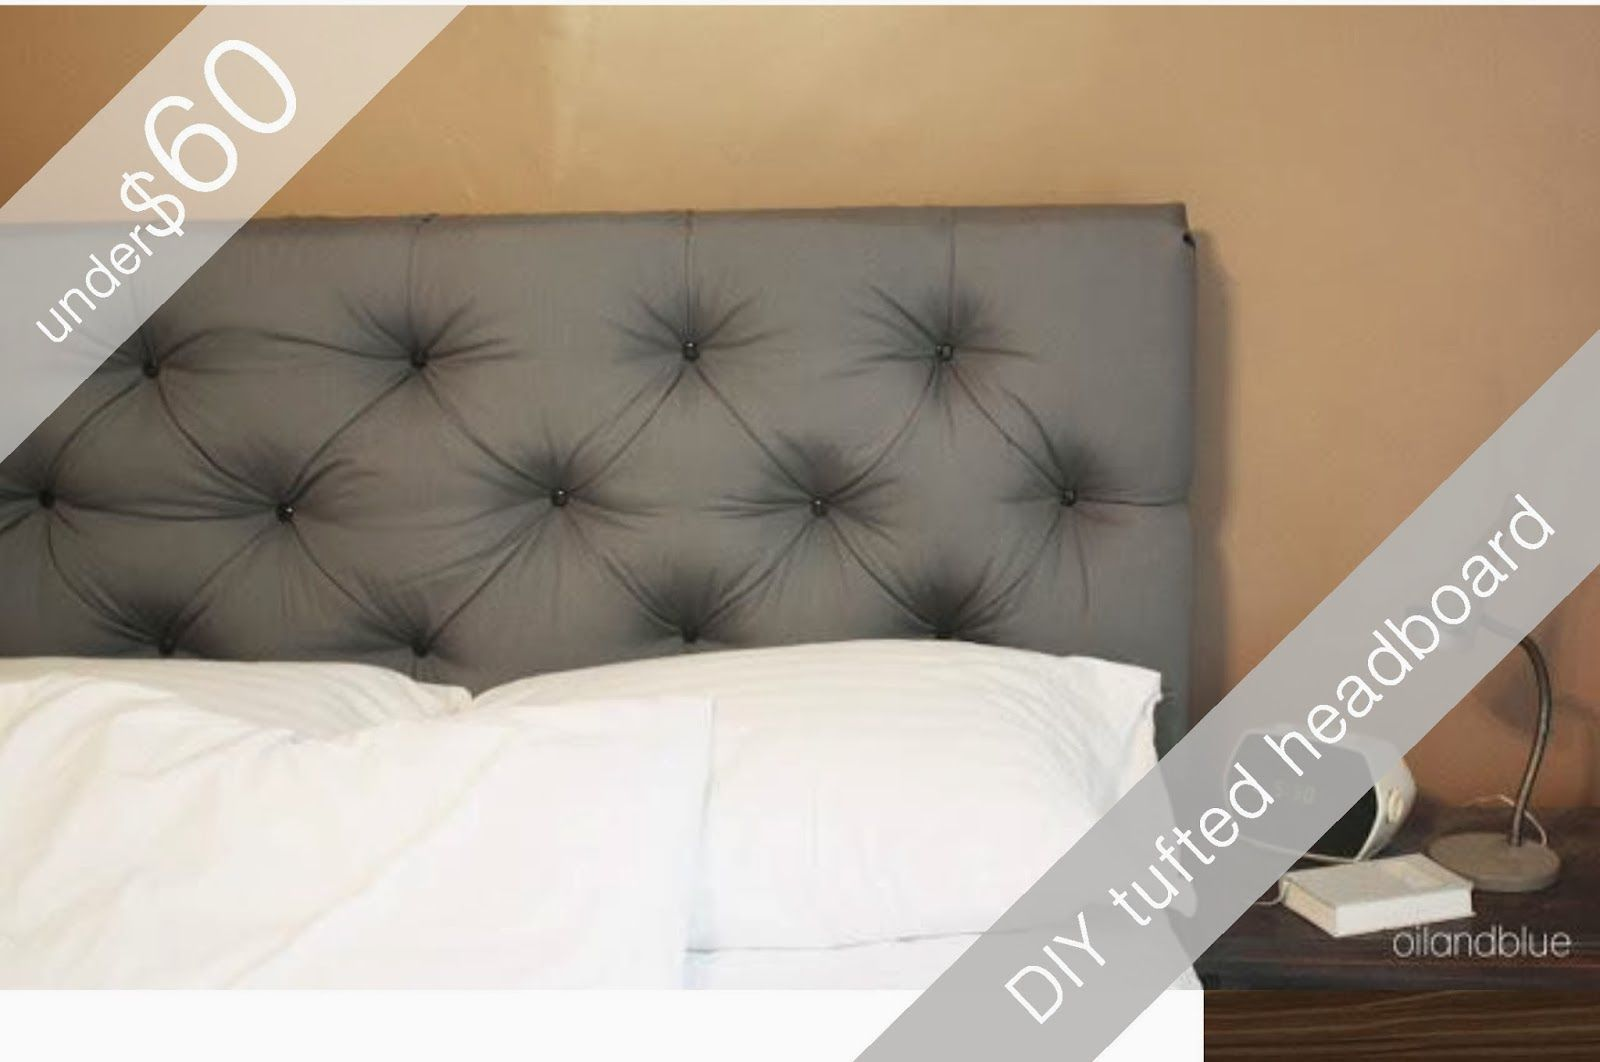 Oil And Blue Queen Size Tufted Headboard For Under 60 Diy